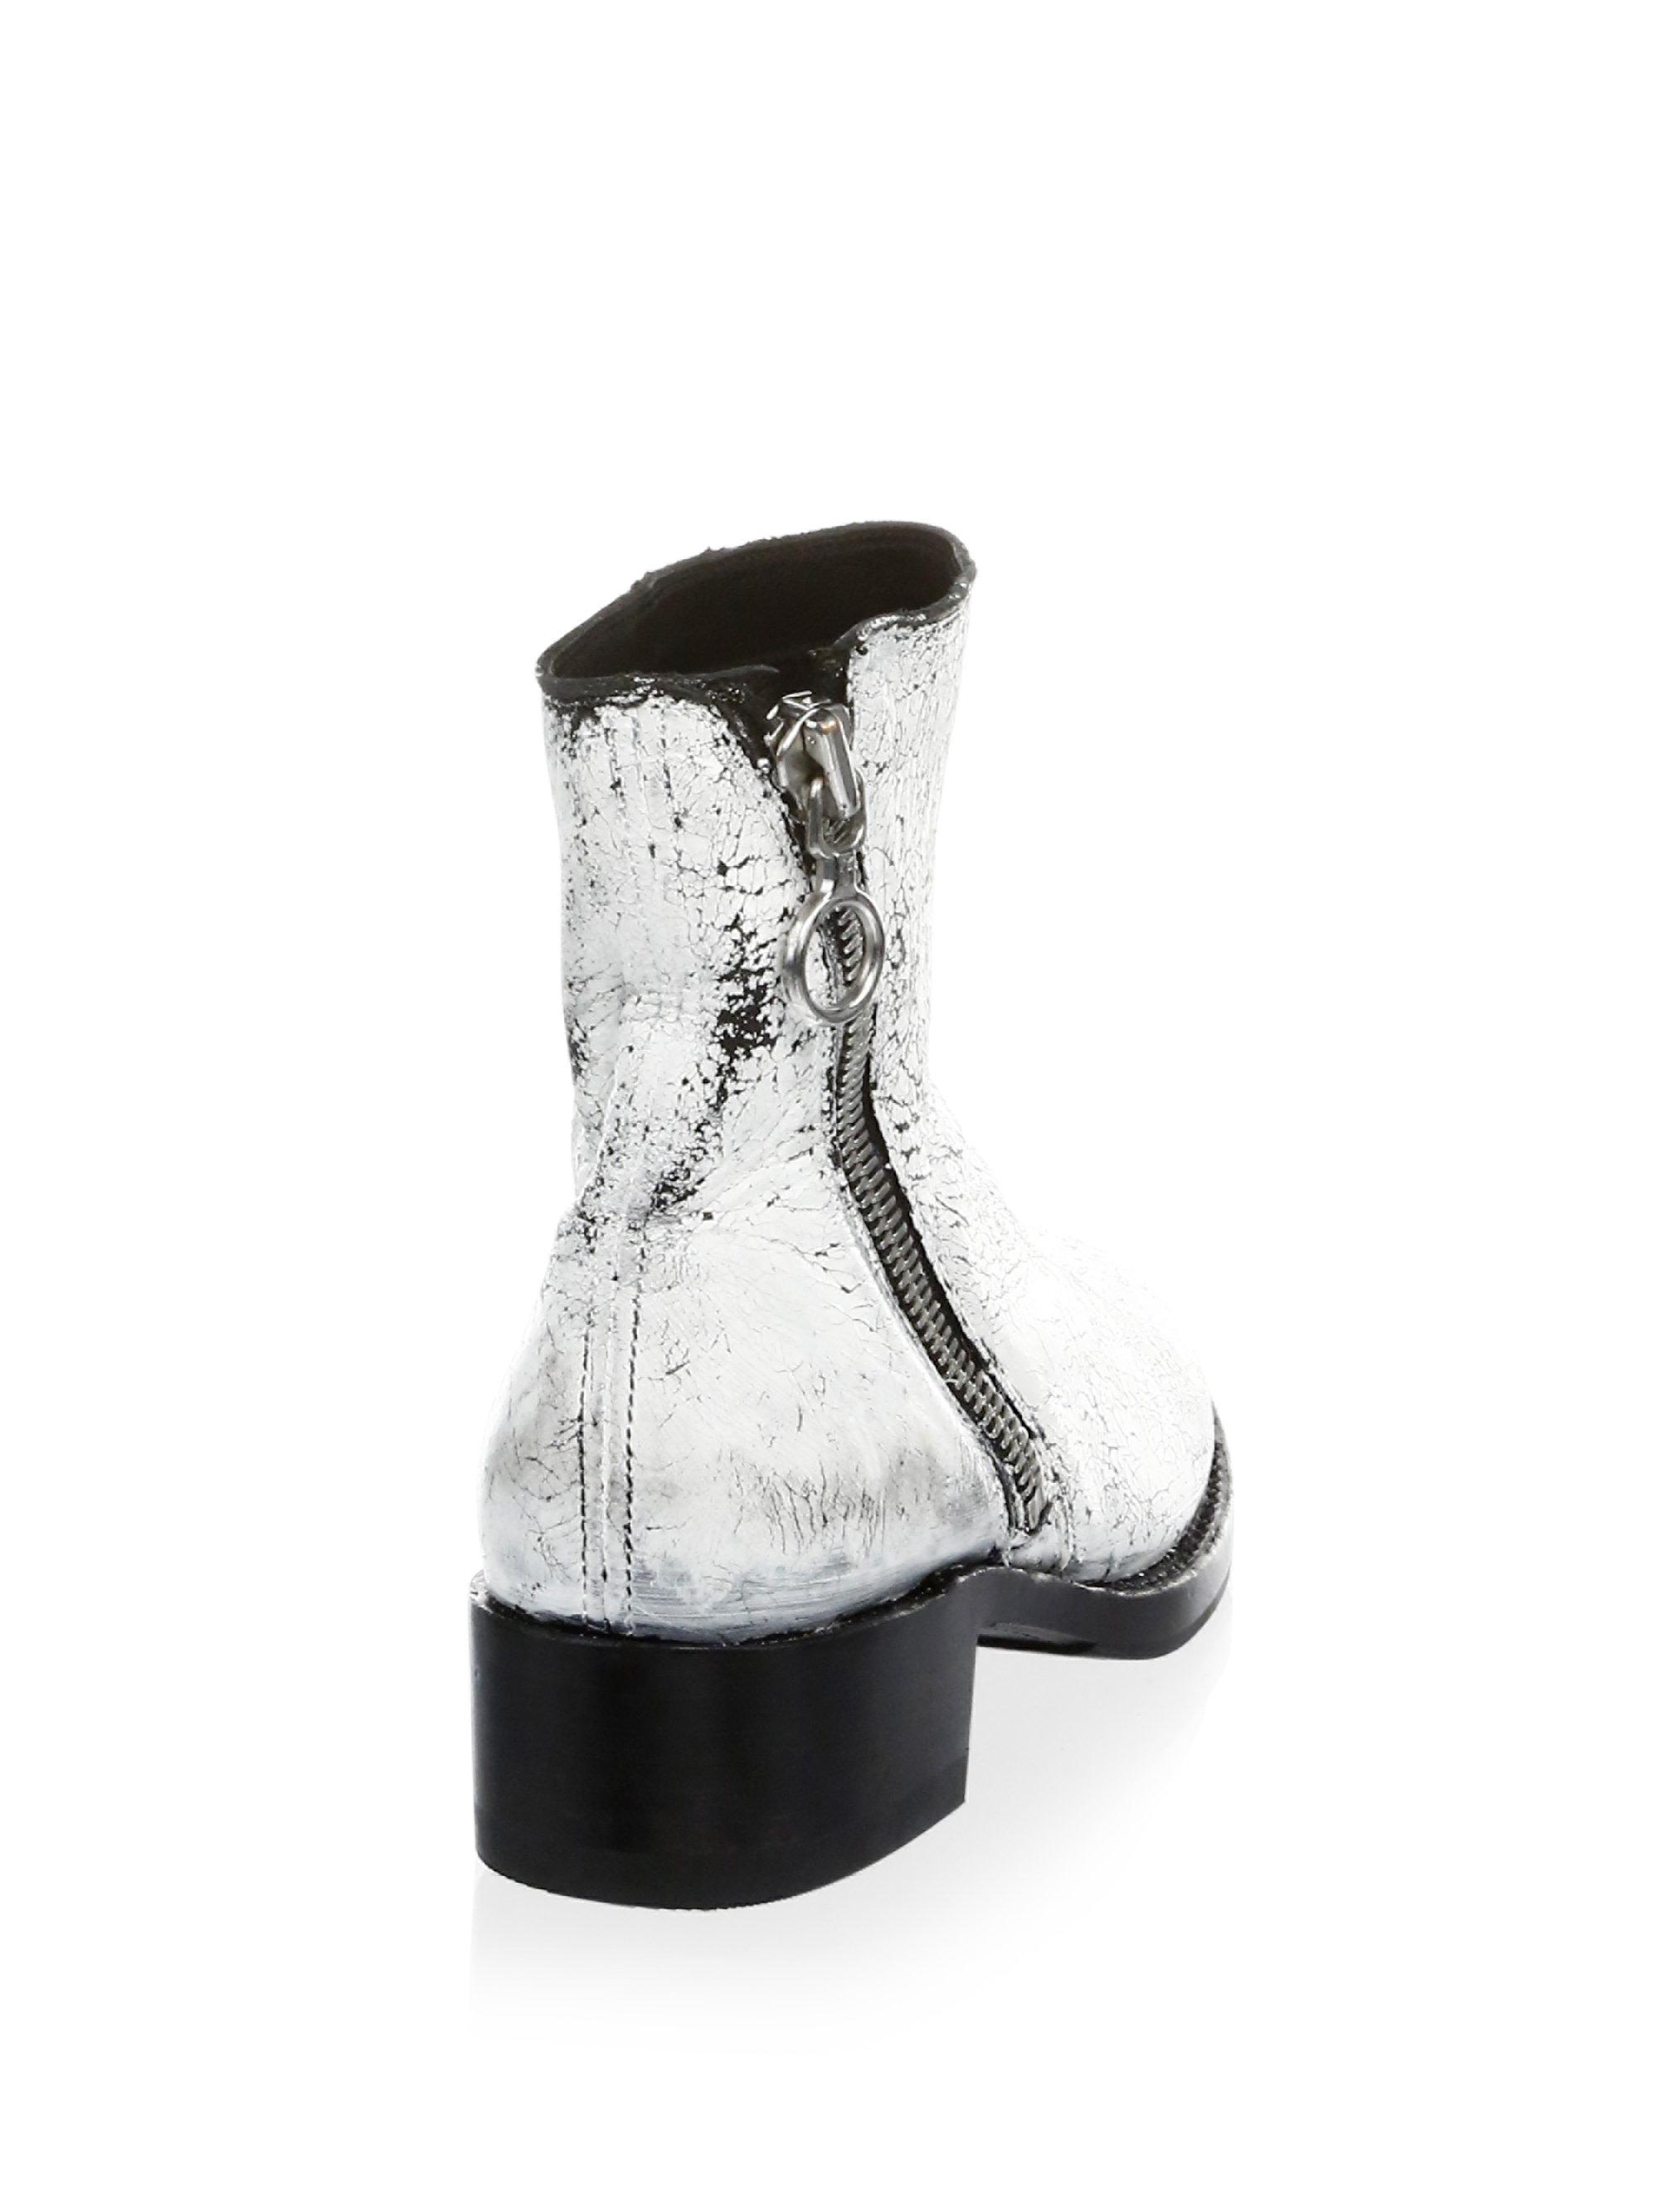 Frye Crackle Paint Patent Leather Booties cHAvjE